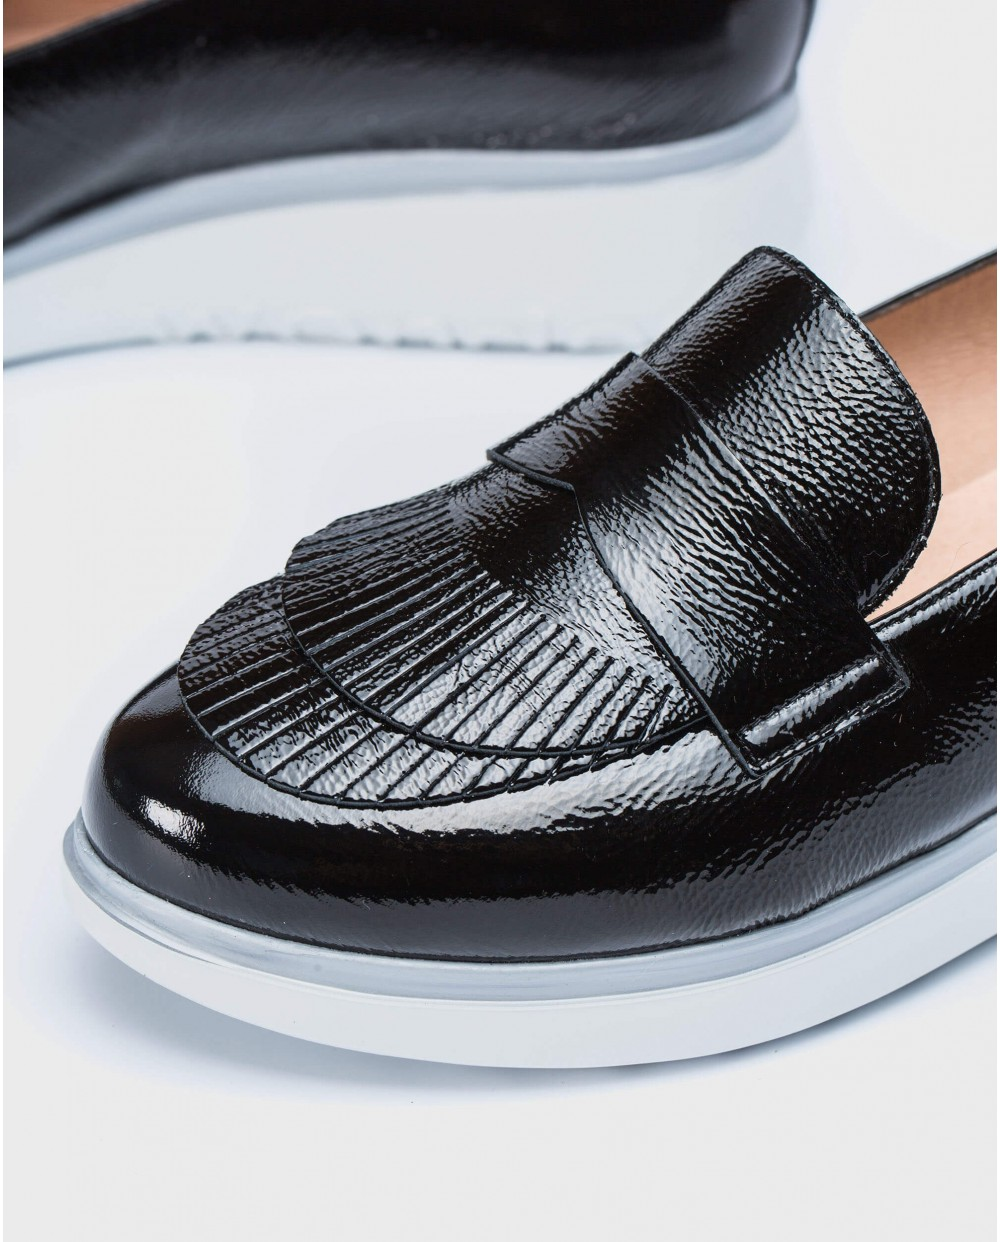 Wonders-Wedges-Patent leather moccasins with fringe detail